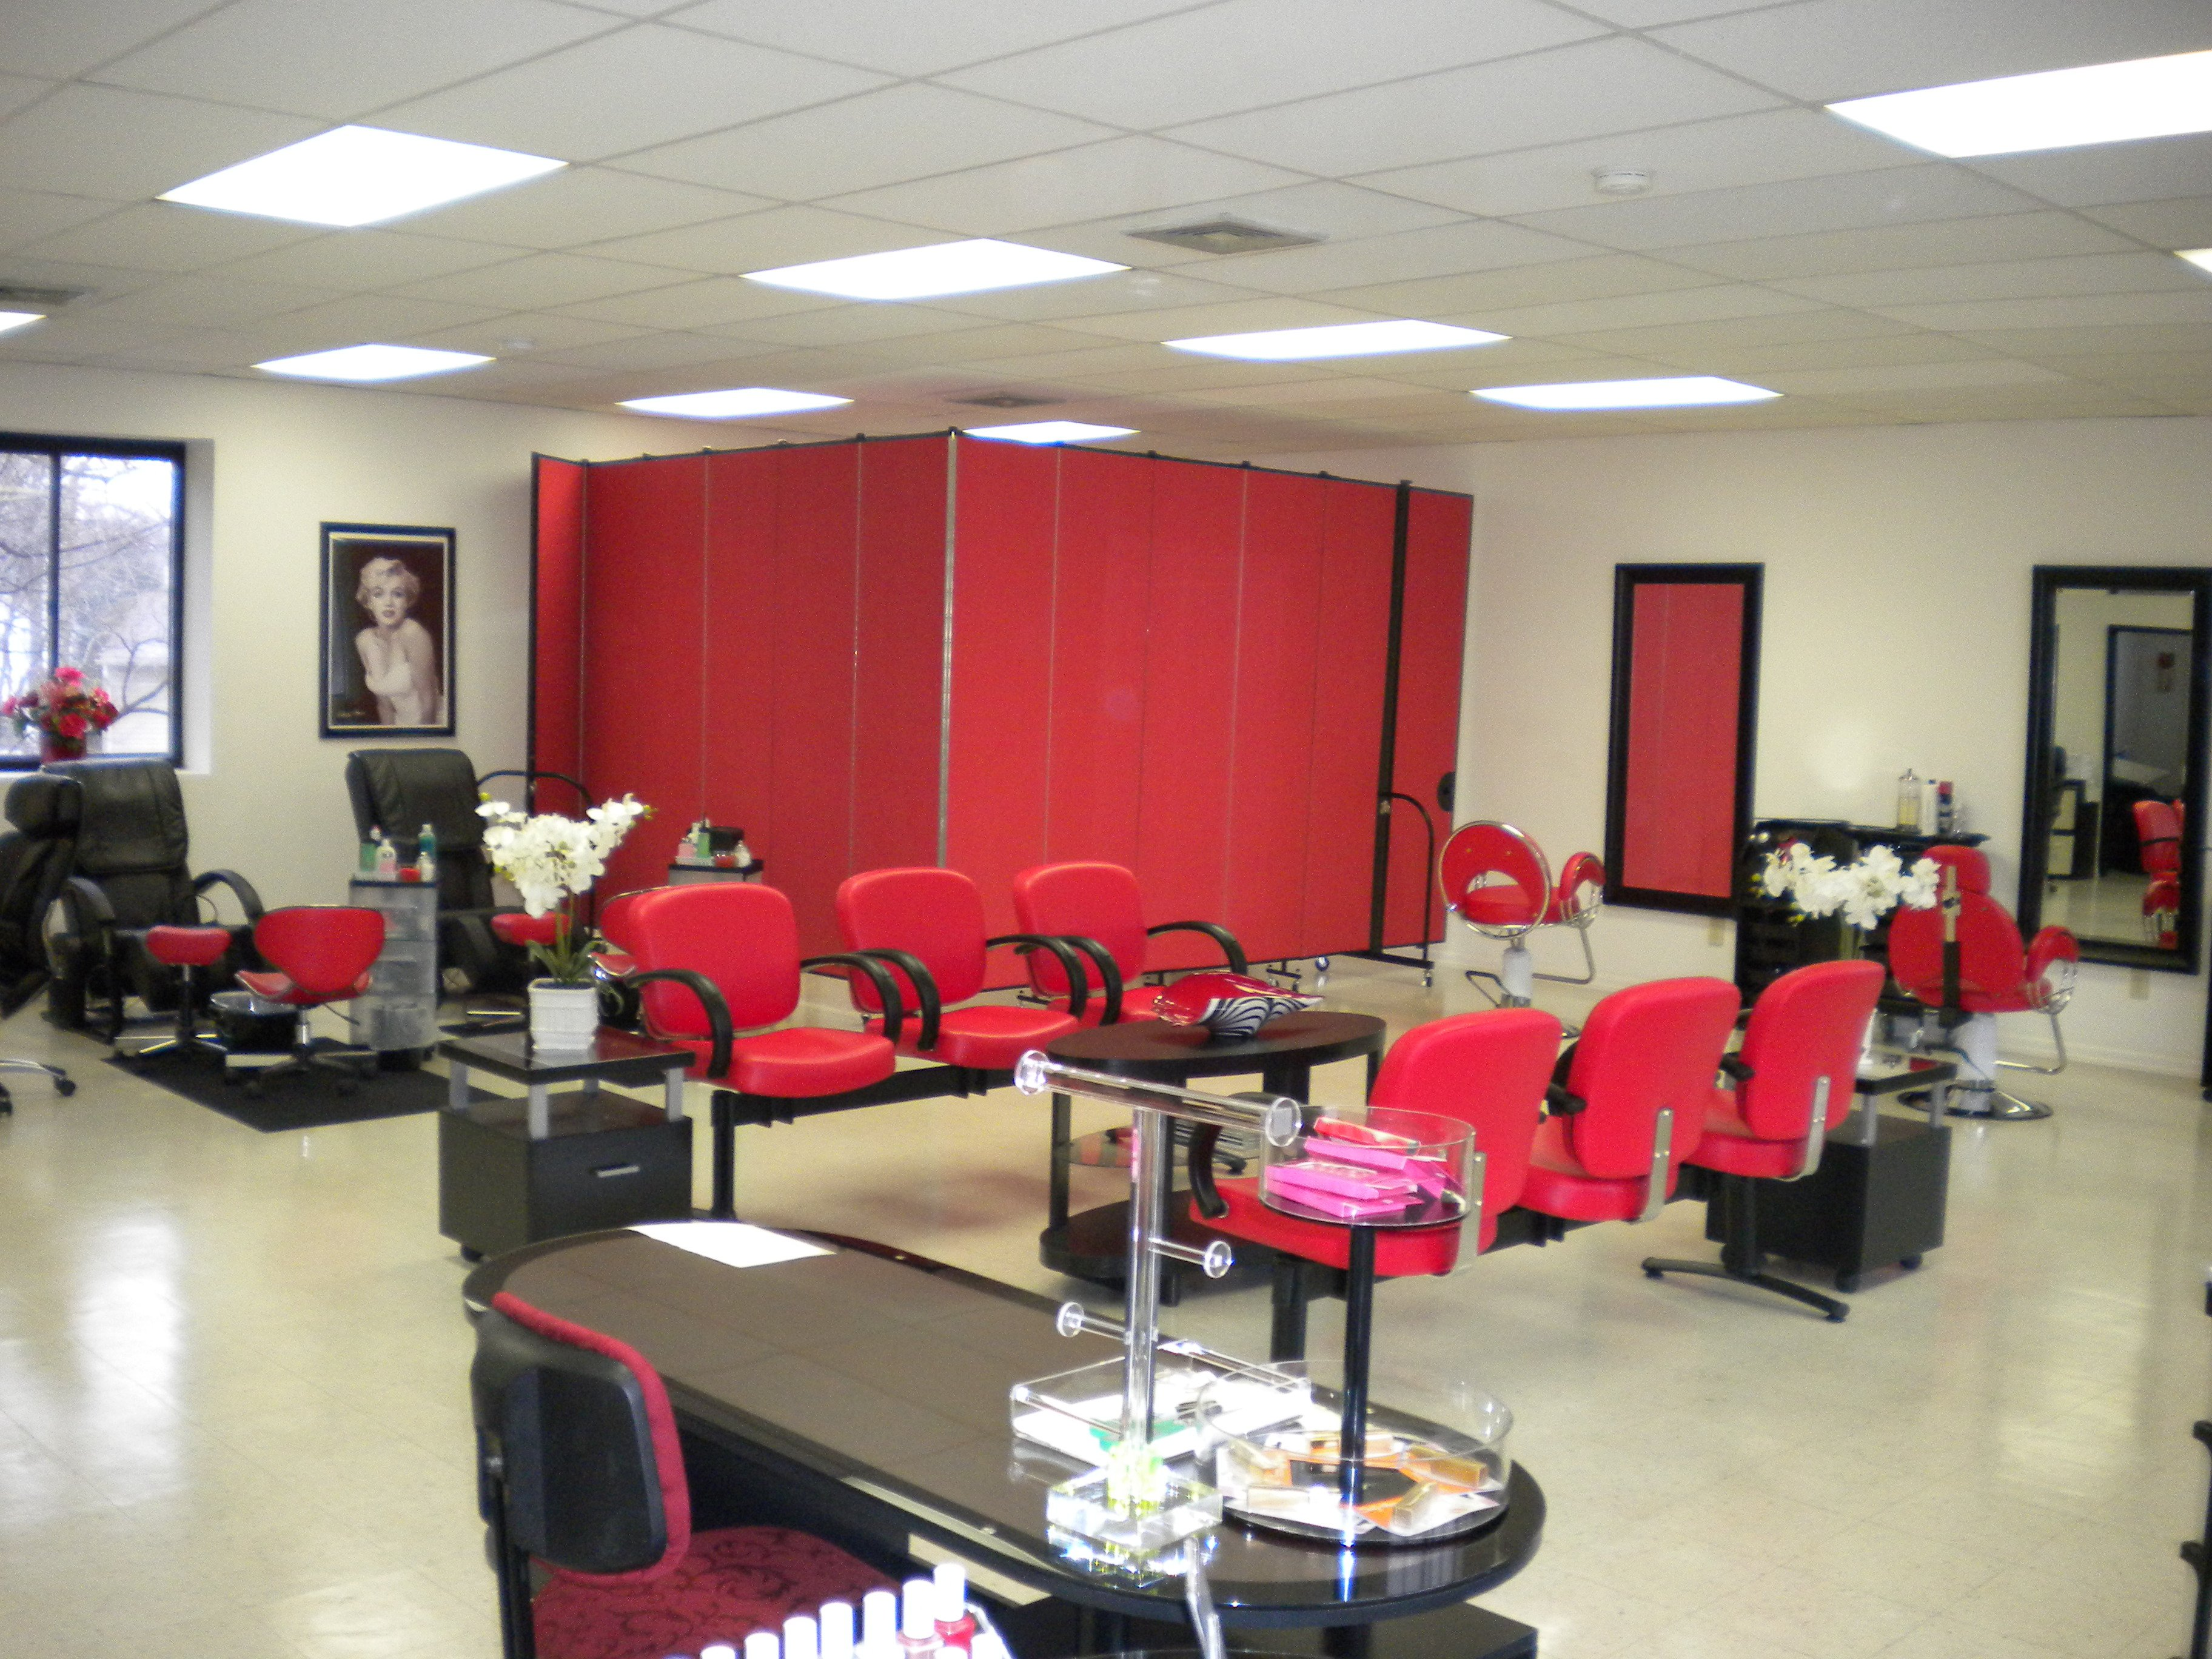 Pretty Nails Salon converts a corner into usable work space with a room divider